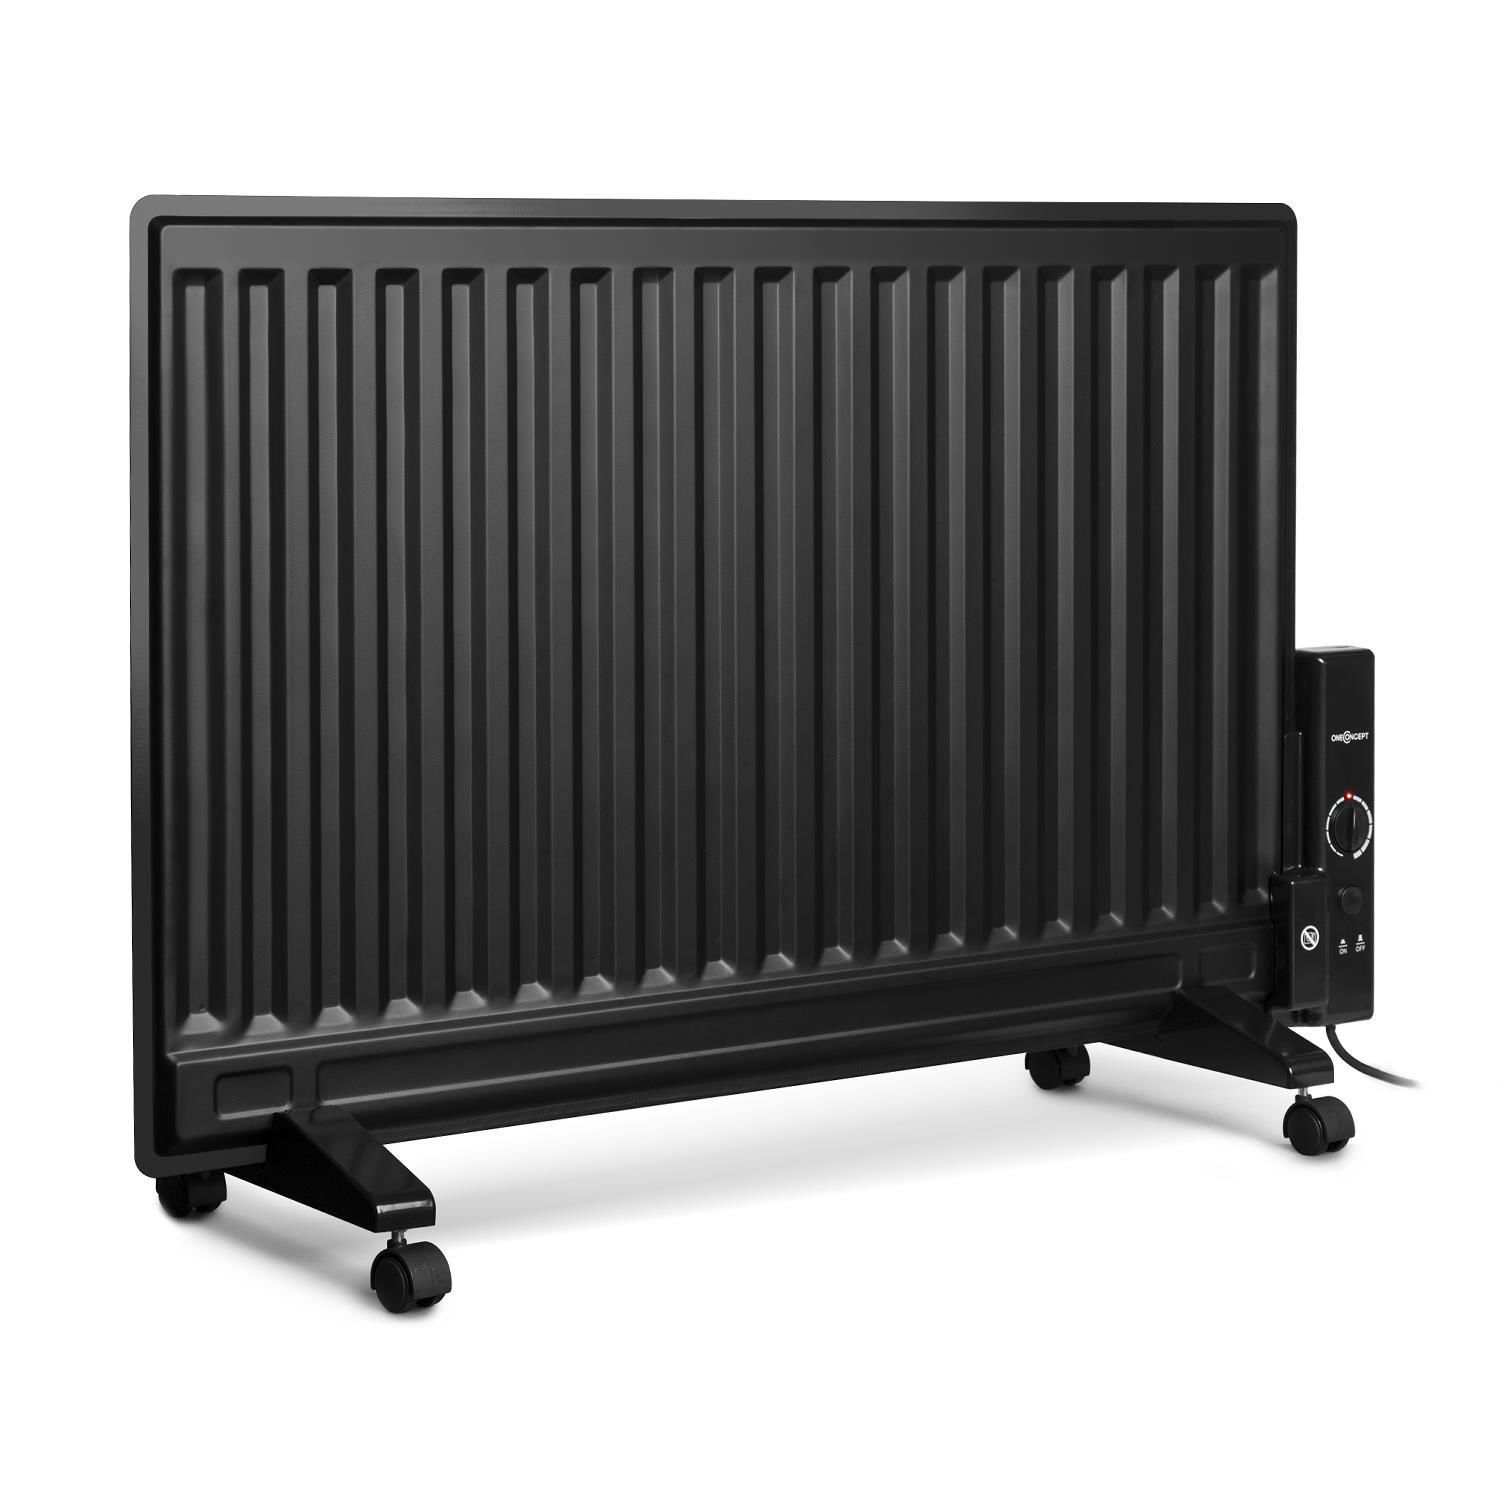 radiateur mobile inertie fabulous with radiateur mobile inertie great manomano cayenne. Black Bedroom Furniture Sets. Home Design Ideas